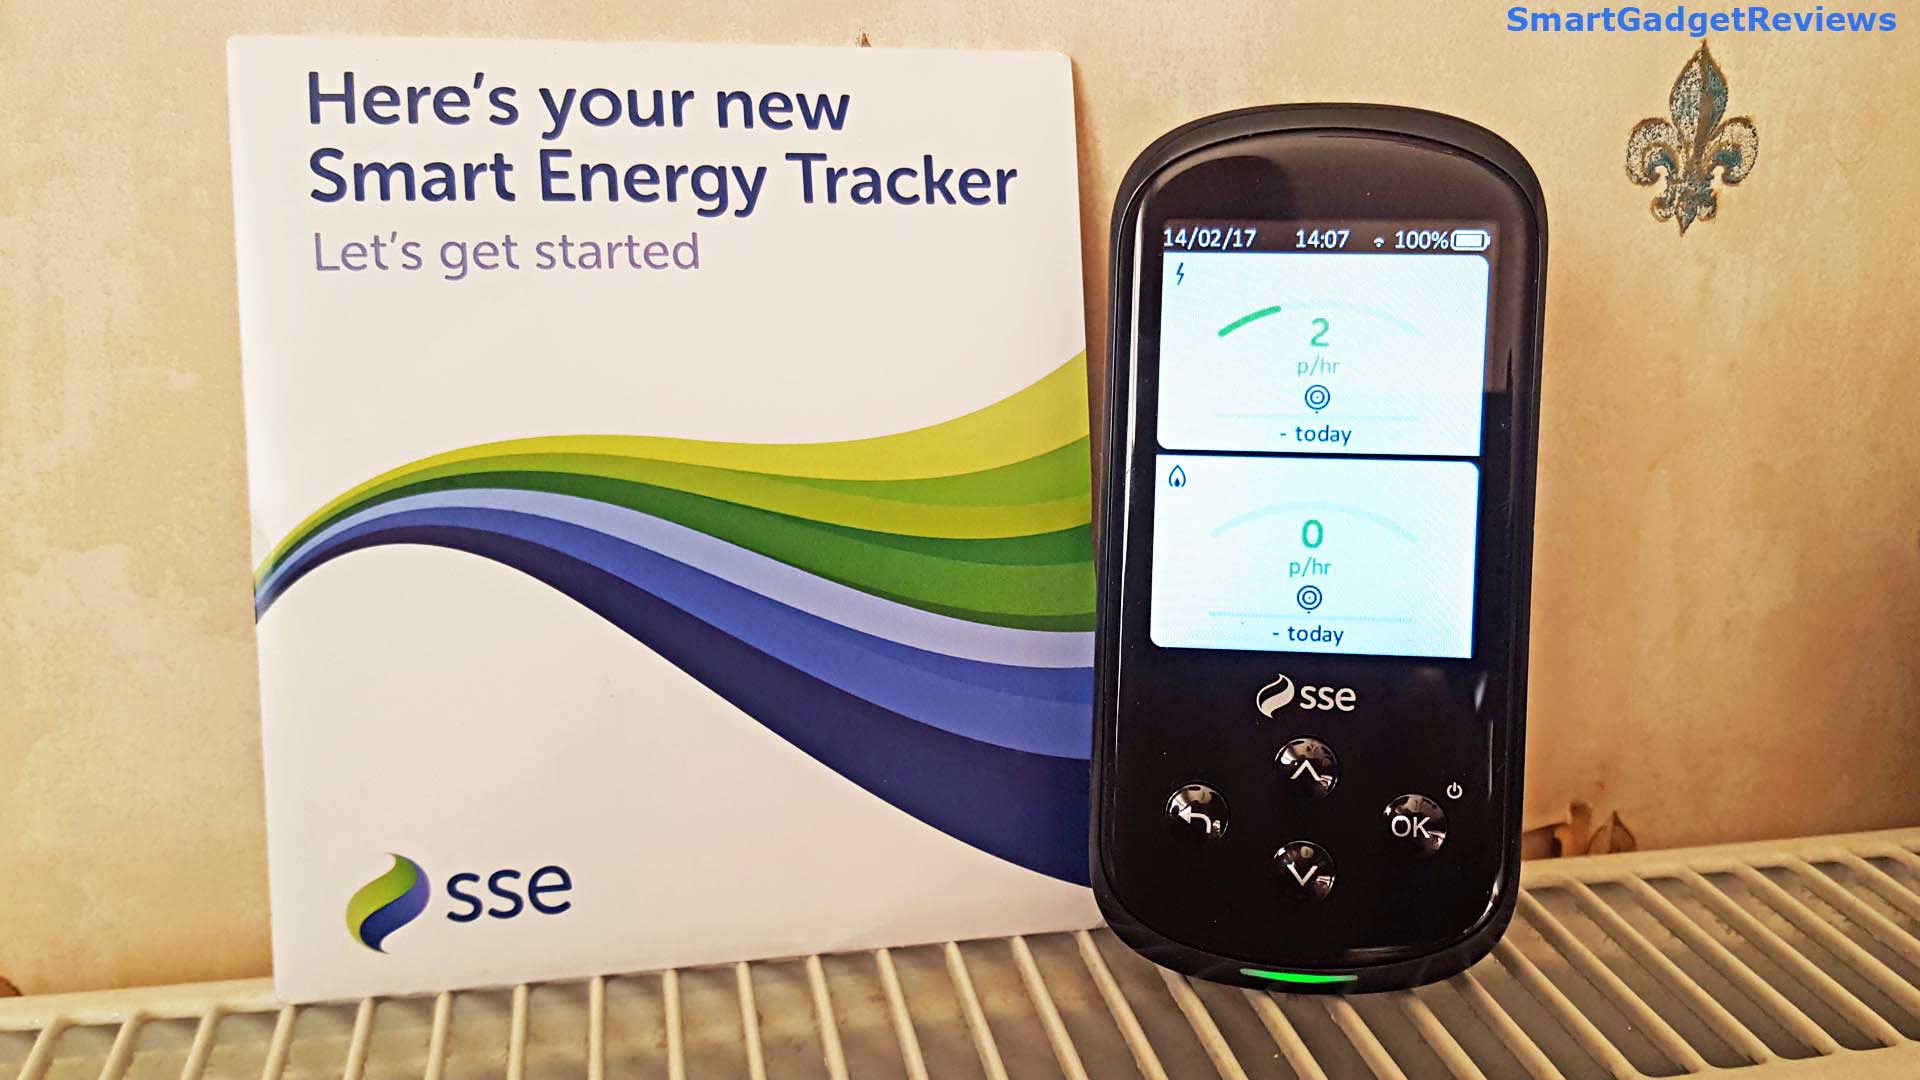 Today the 14th we are getting Smart Energy Meters installed.